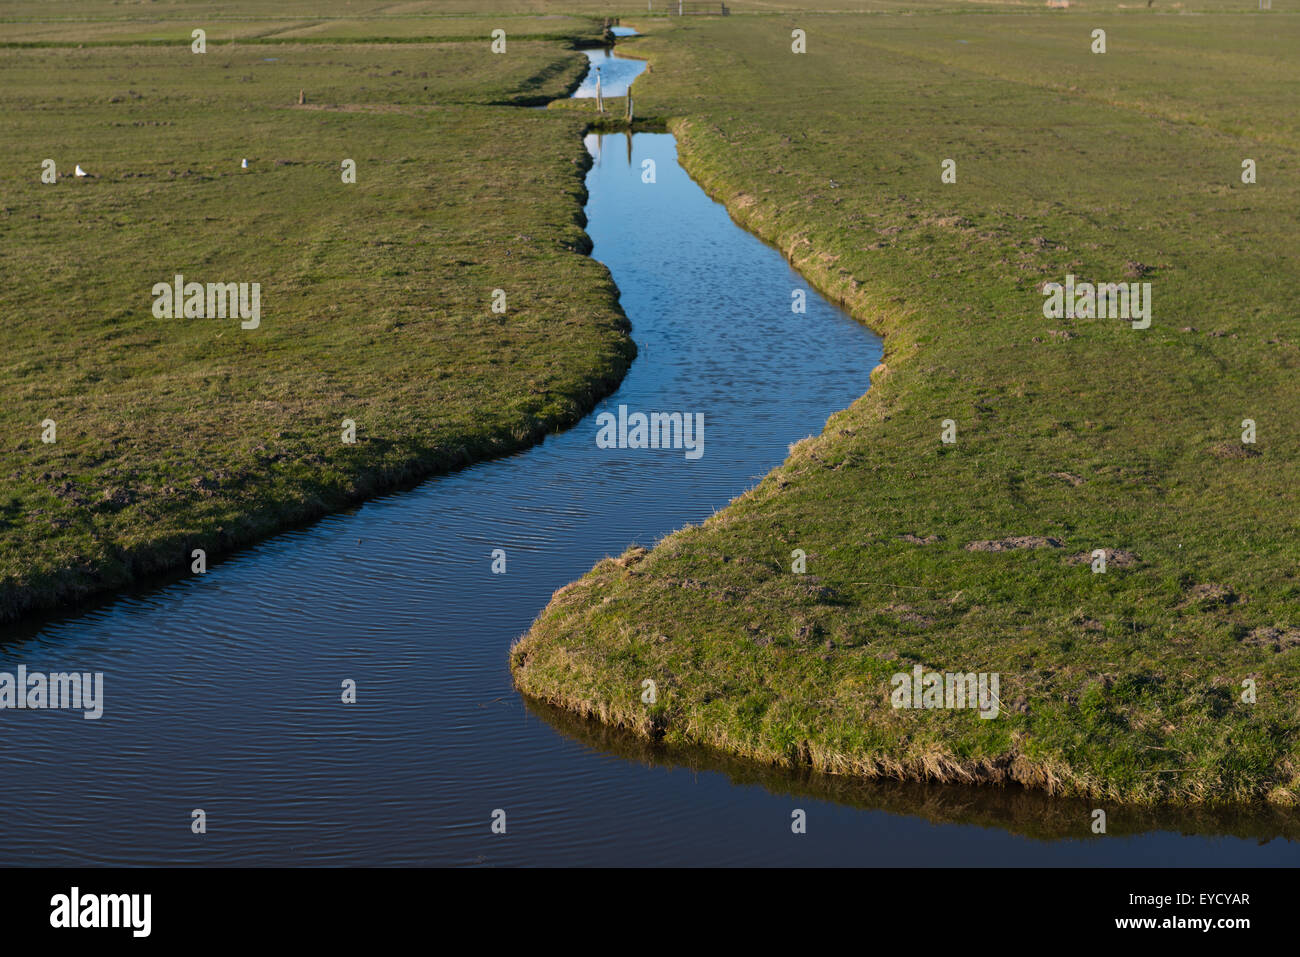 A green Dutch polder (reclaimed land) and its ditches & gullies reflecting the blue winter sky near Broek in - Stock Image